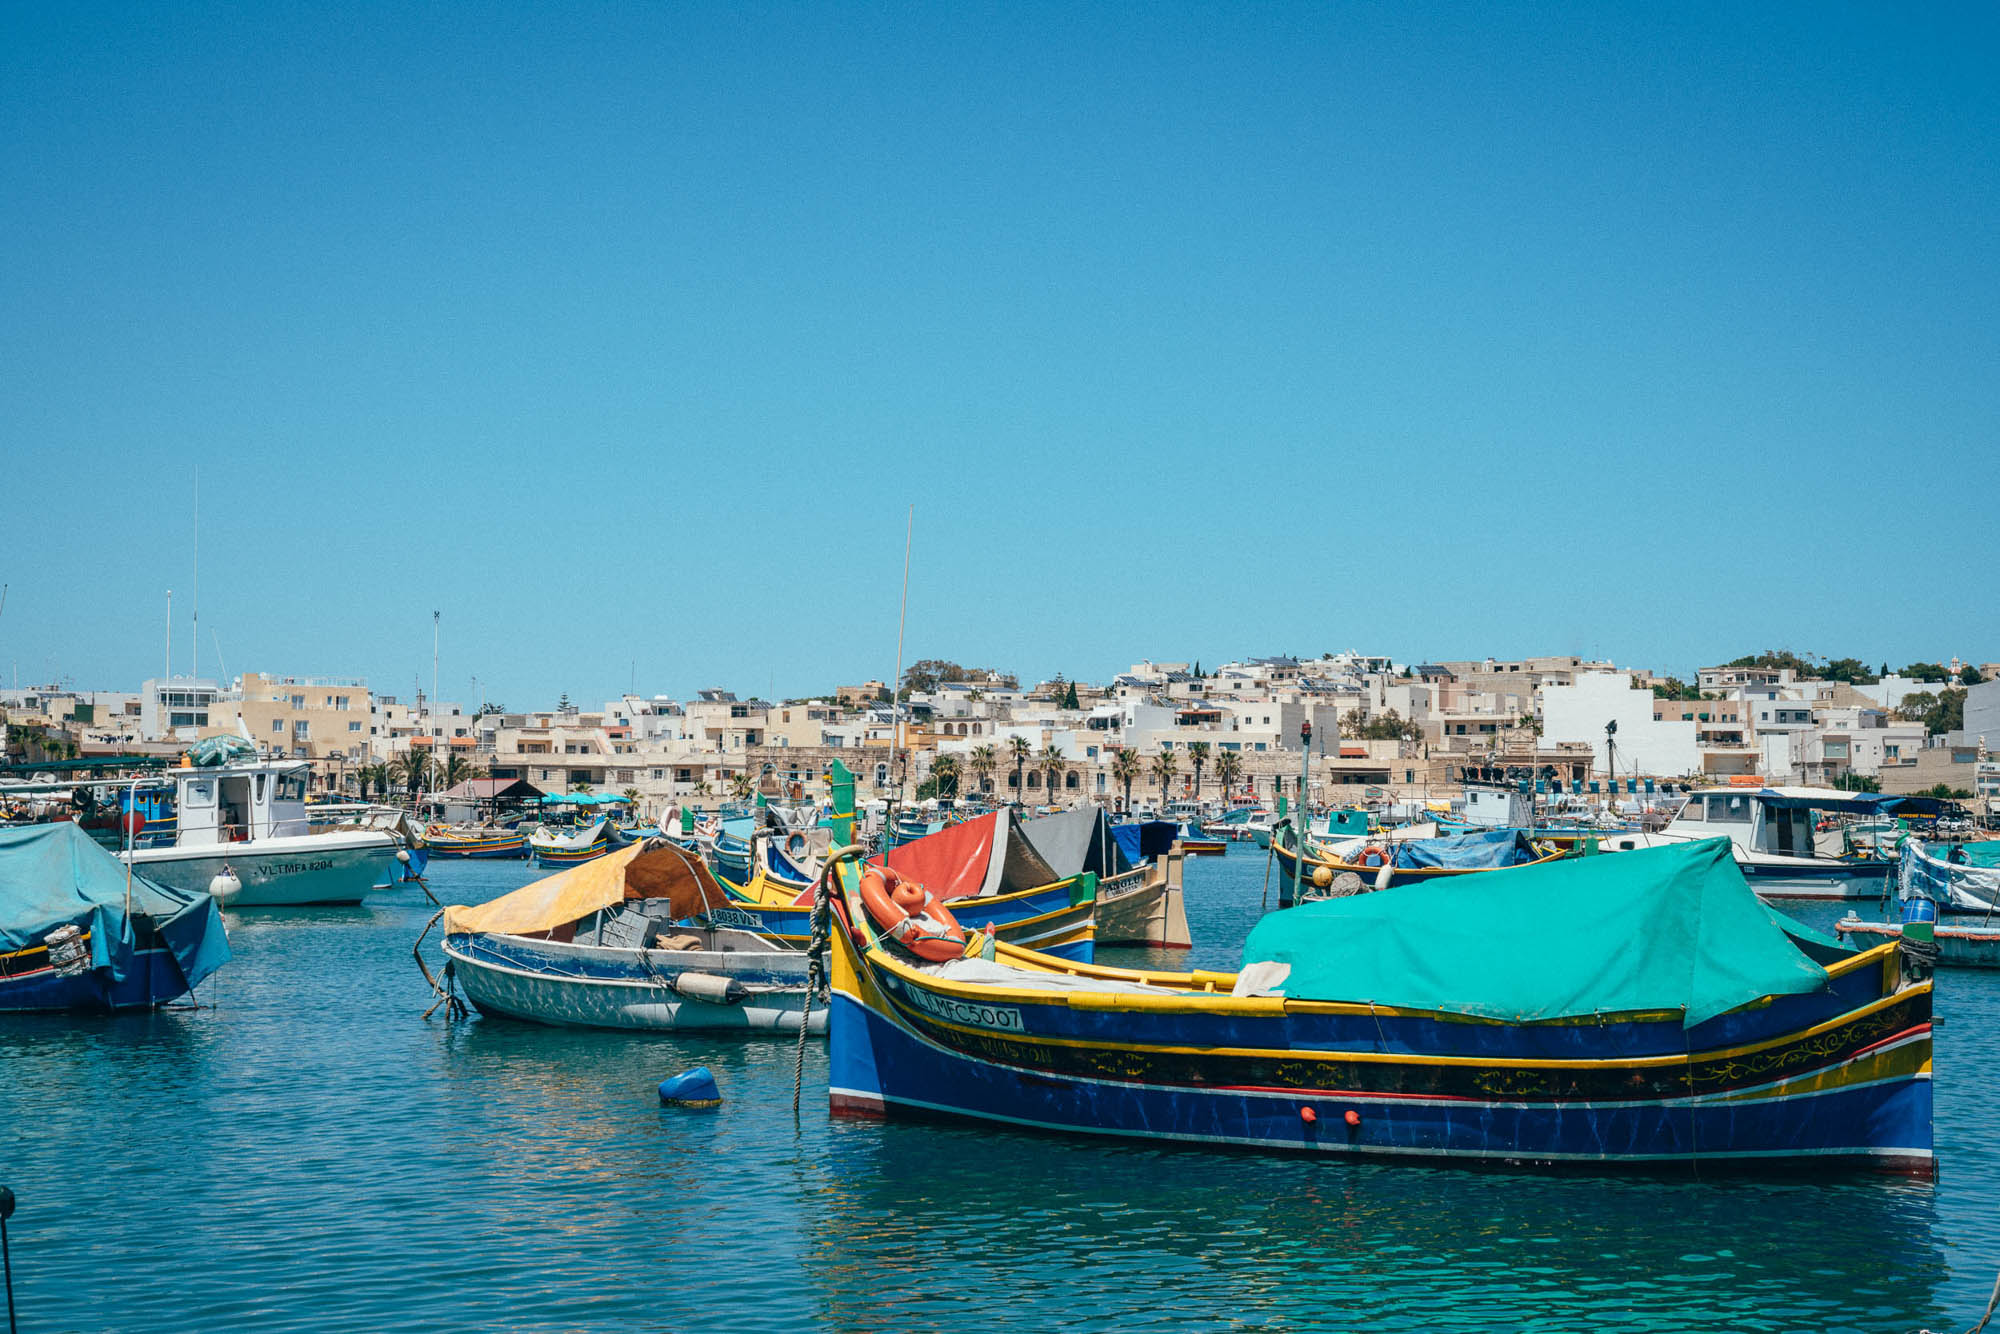 Marsaxlokk is a small traditional fishing village in Republic of Malta.